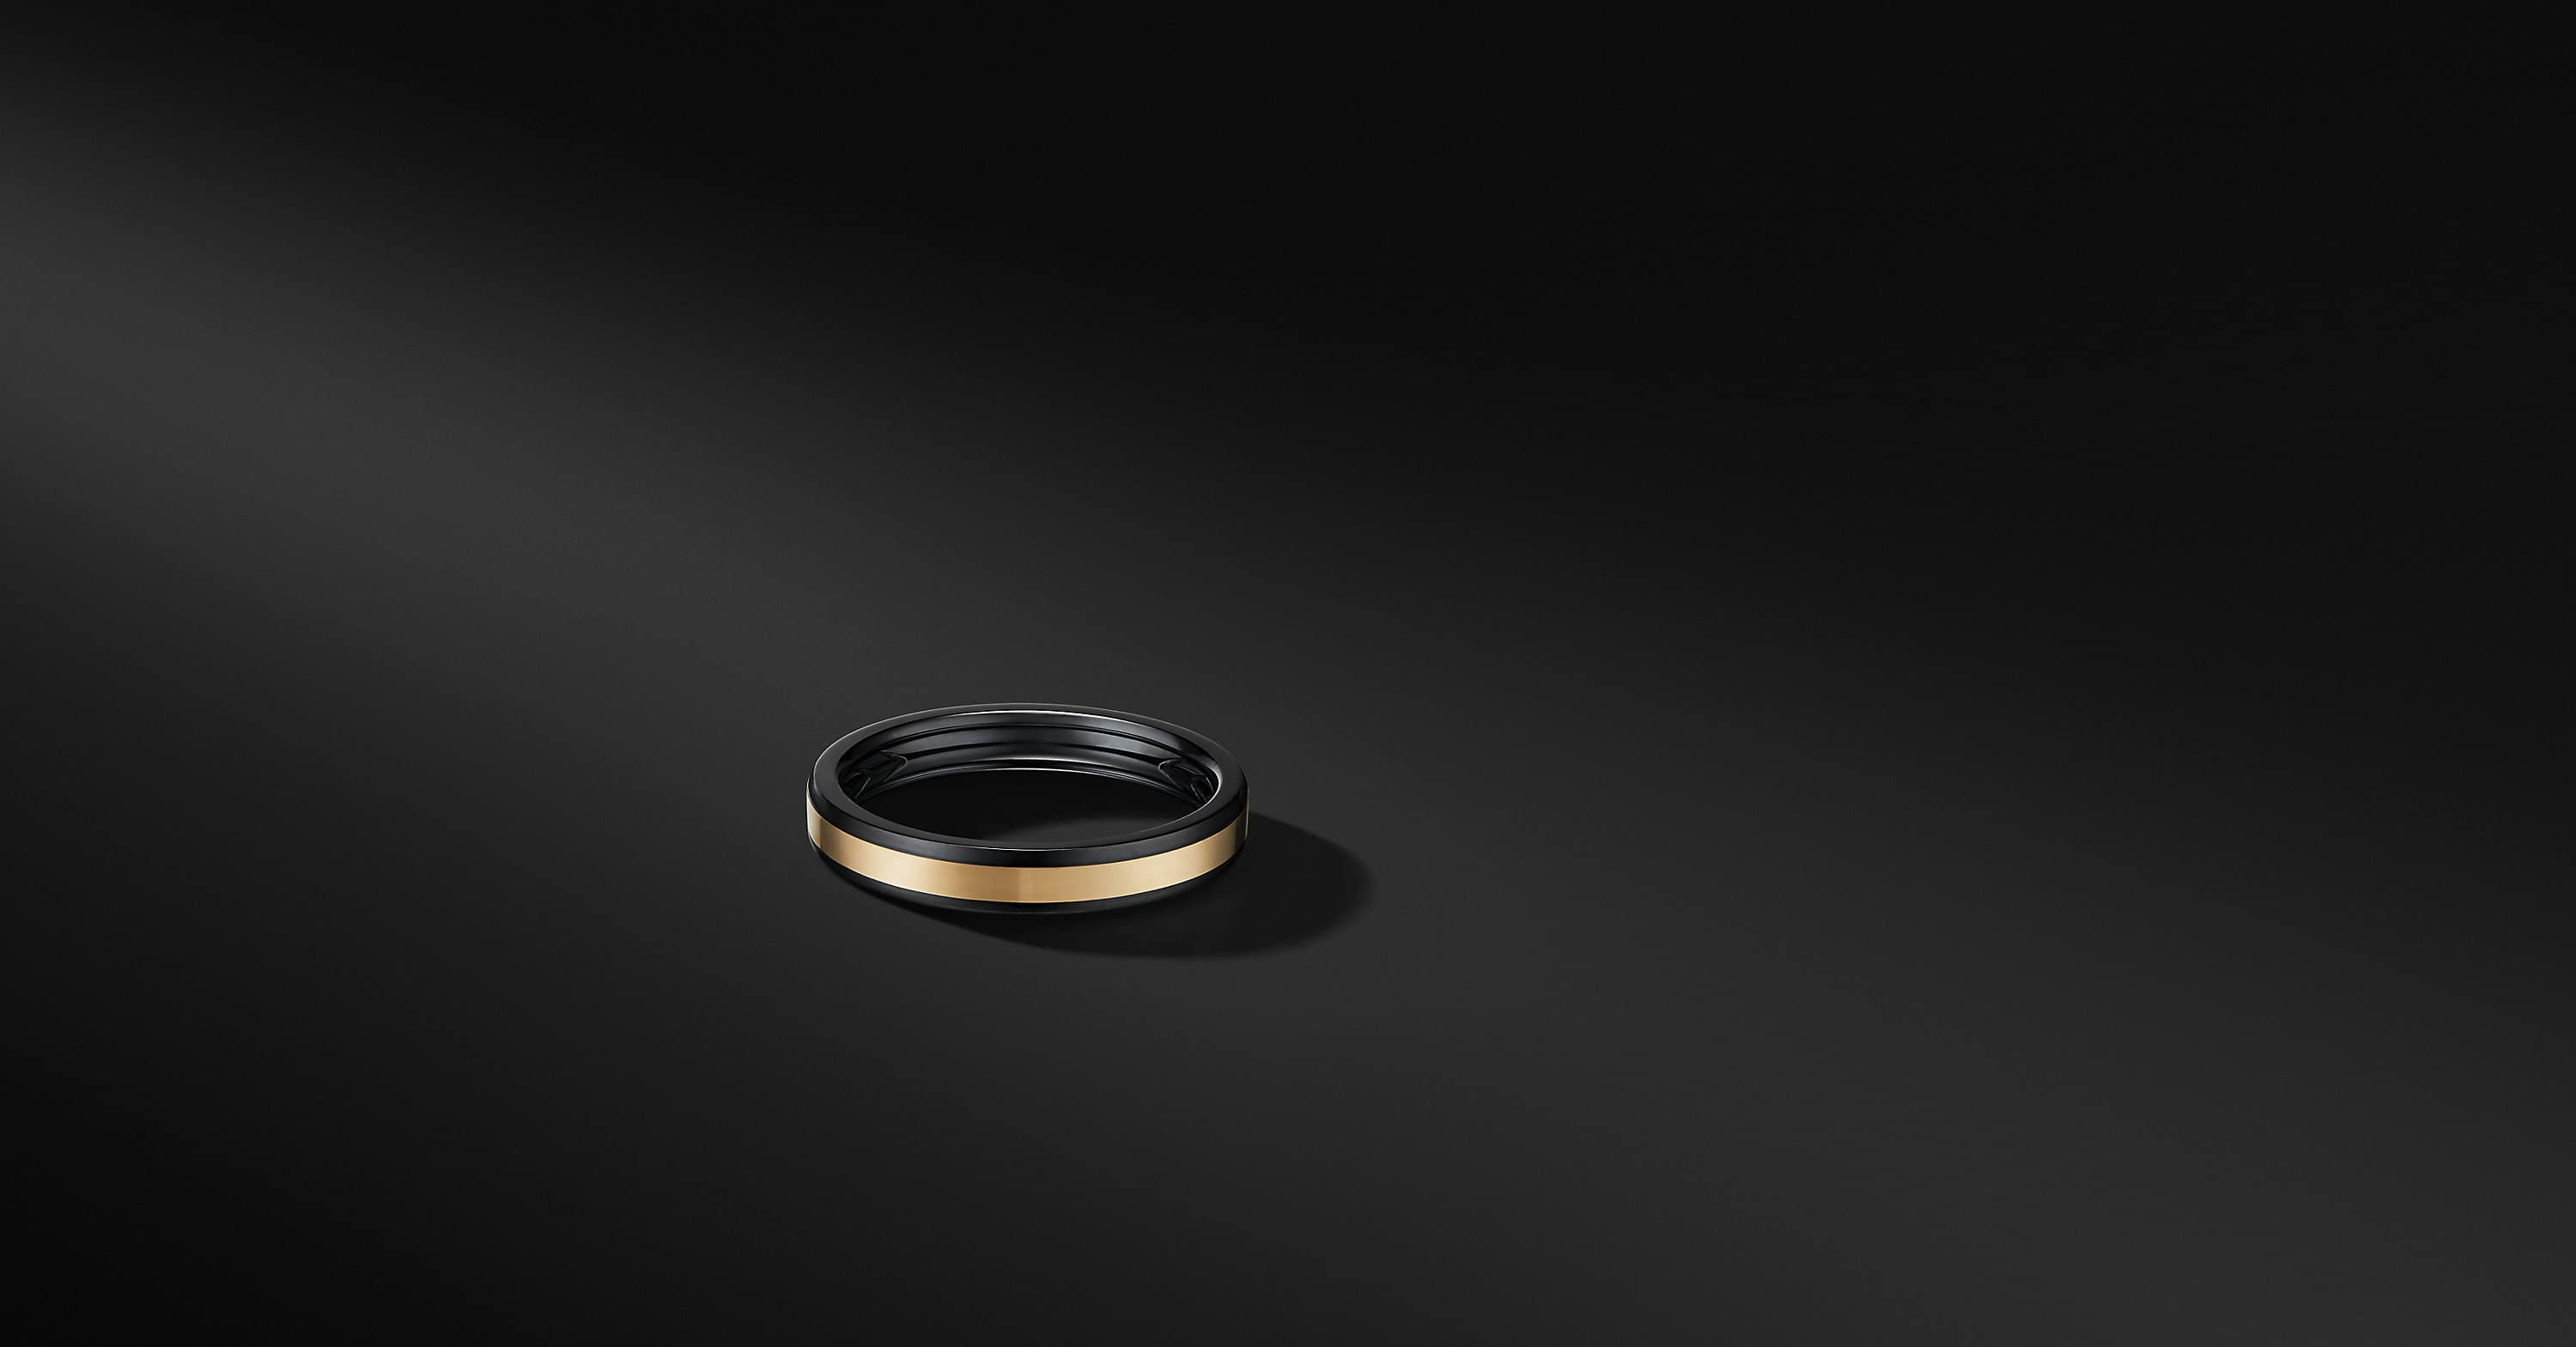 Beveled Band Ring in Black Titanium with 18K Yellow Gold, 4mm